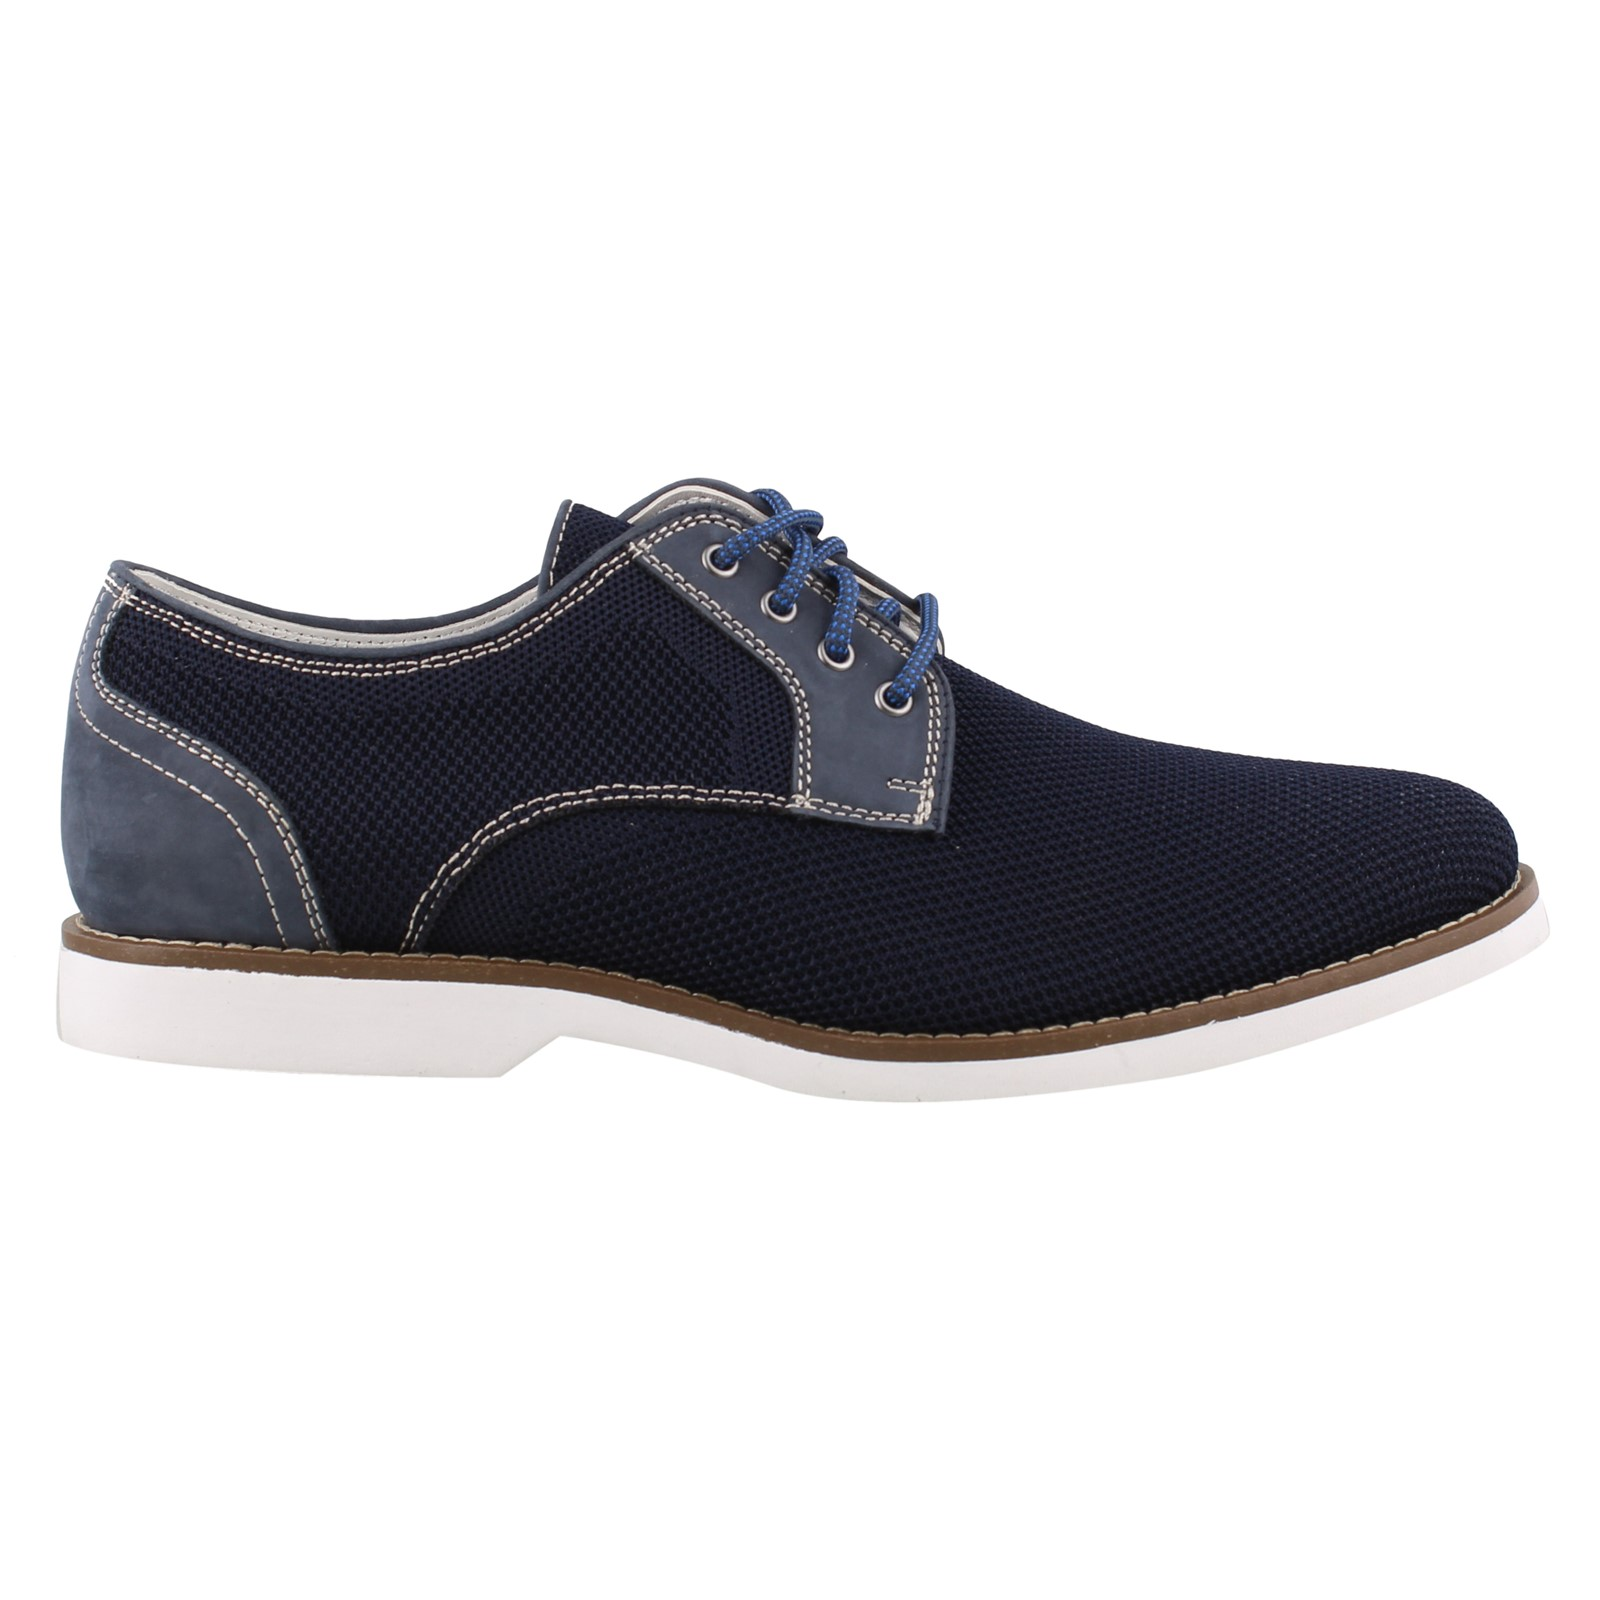 Men's GH Bass and Co, Proctor Lace up Shoe